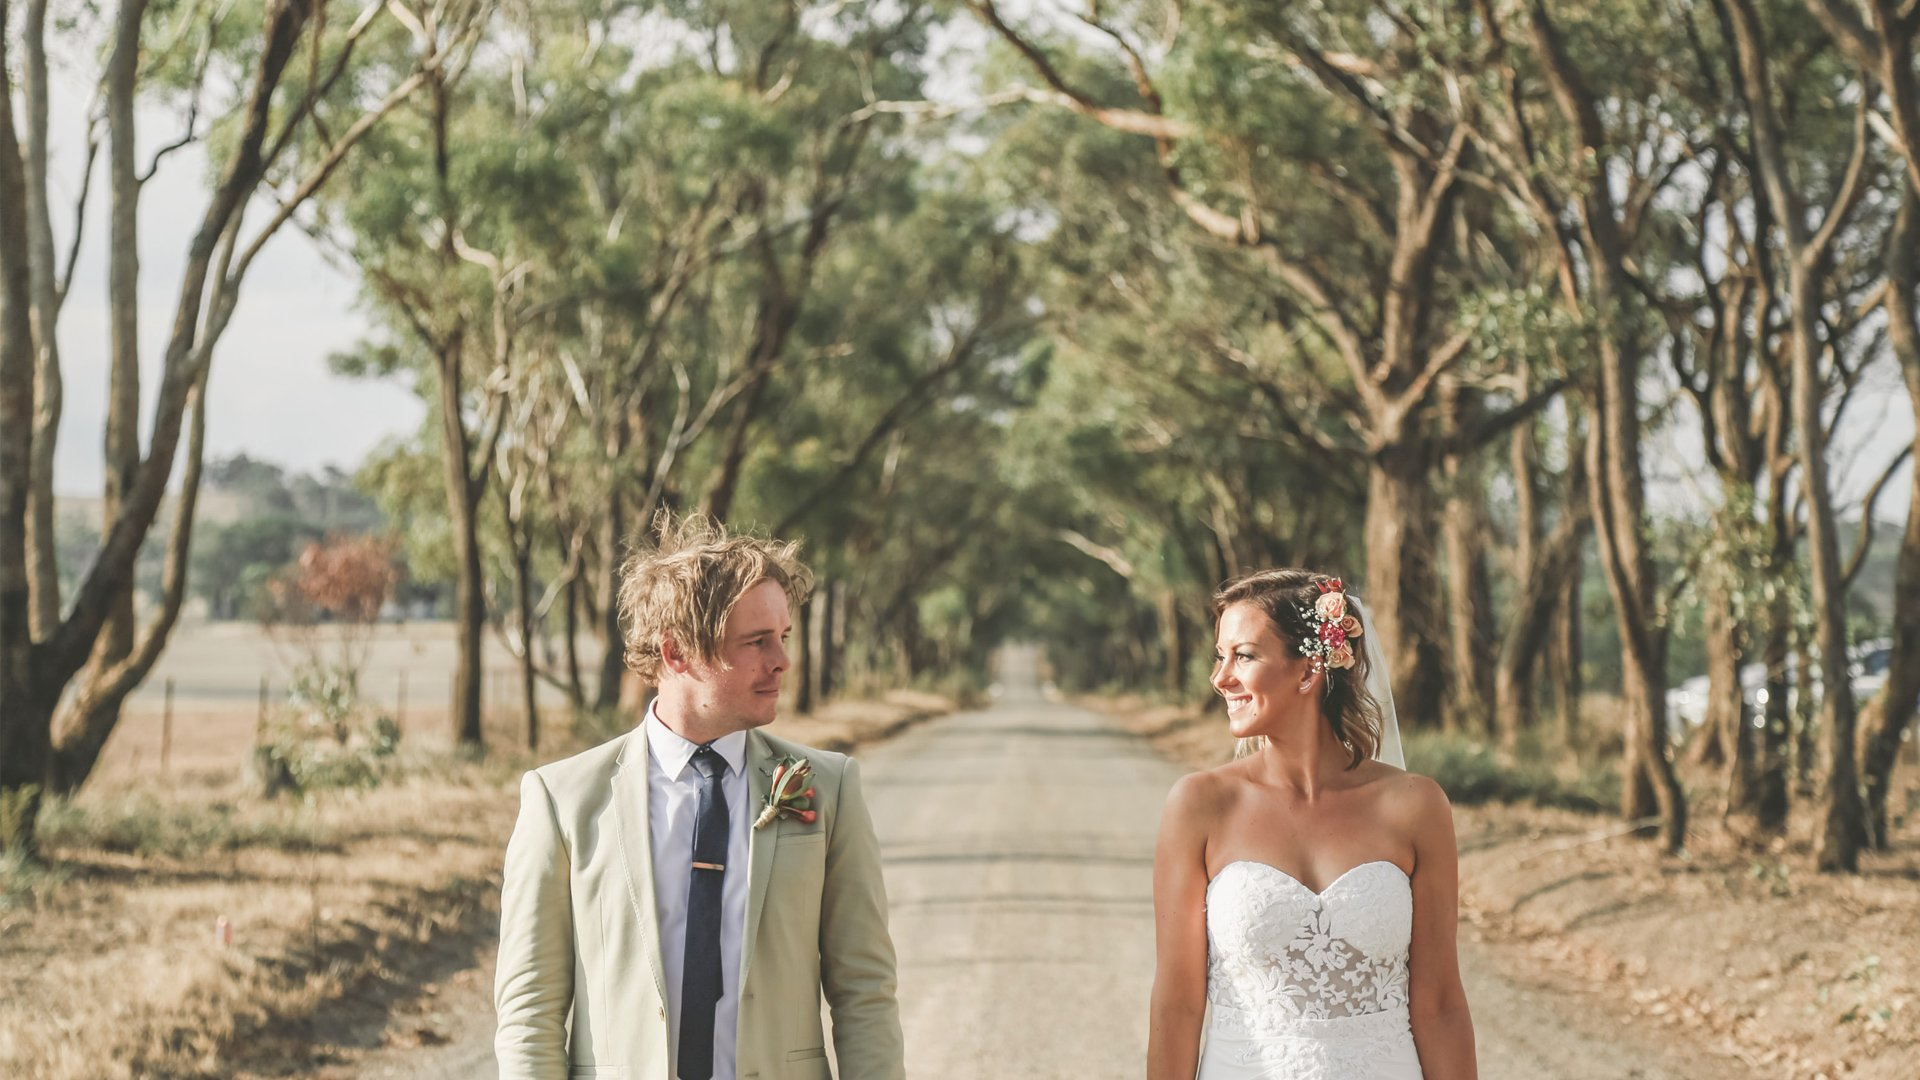 Wedding Videography Melbourne Helps You Keep The Memories Alive